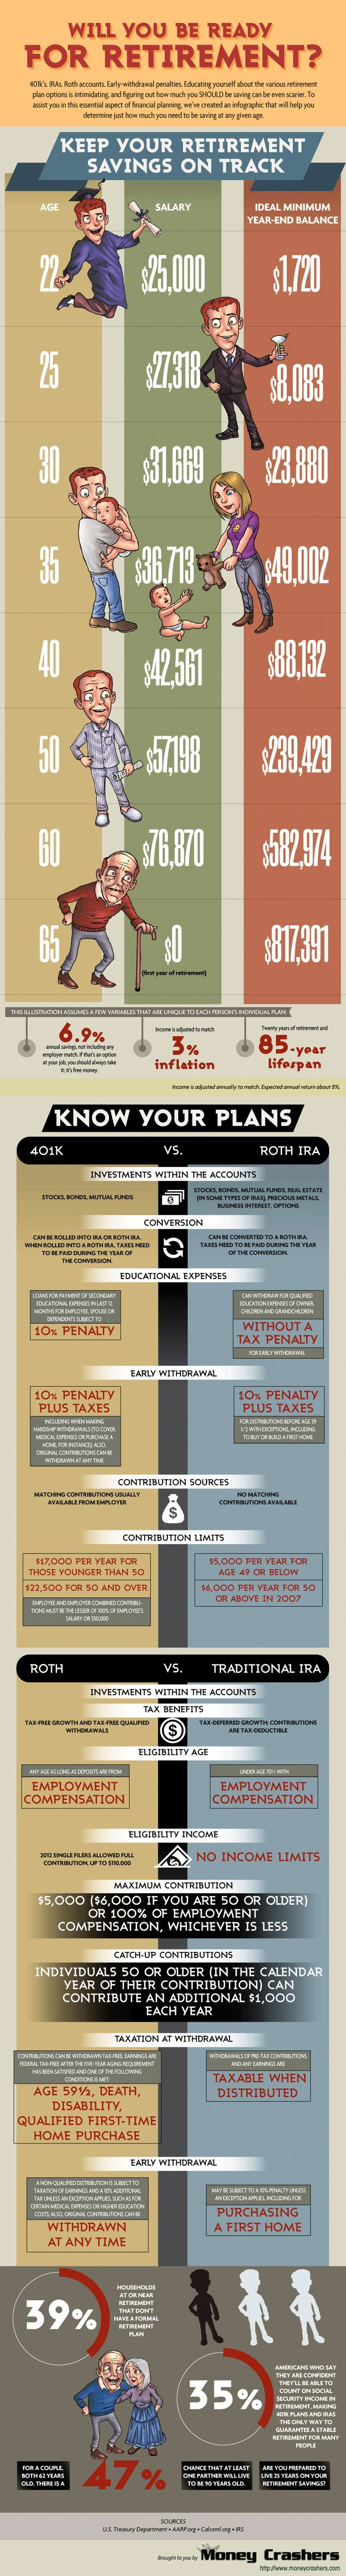 Finance Infographic - Will you be ready for retirement? - 401k, IRA, Roth. -Highland Financial Advisors, LLC does not endorse or approve of any form of third party communication, or re-distribution of this graphic or information that we post on Pinterest. Nor do we ourselves endorse this third party or their products/services. Retirement, How To Retire Save For Retirement